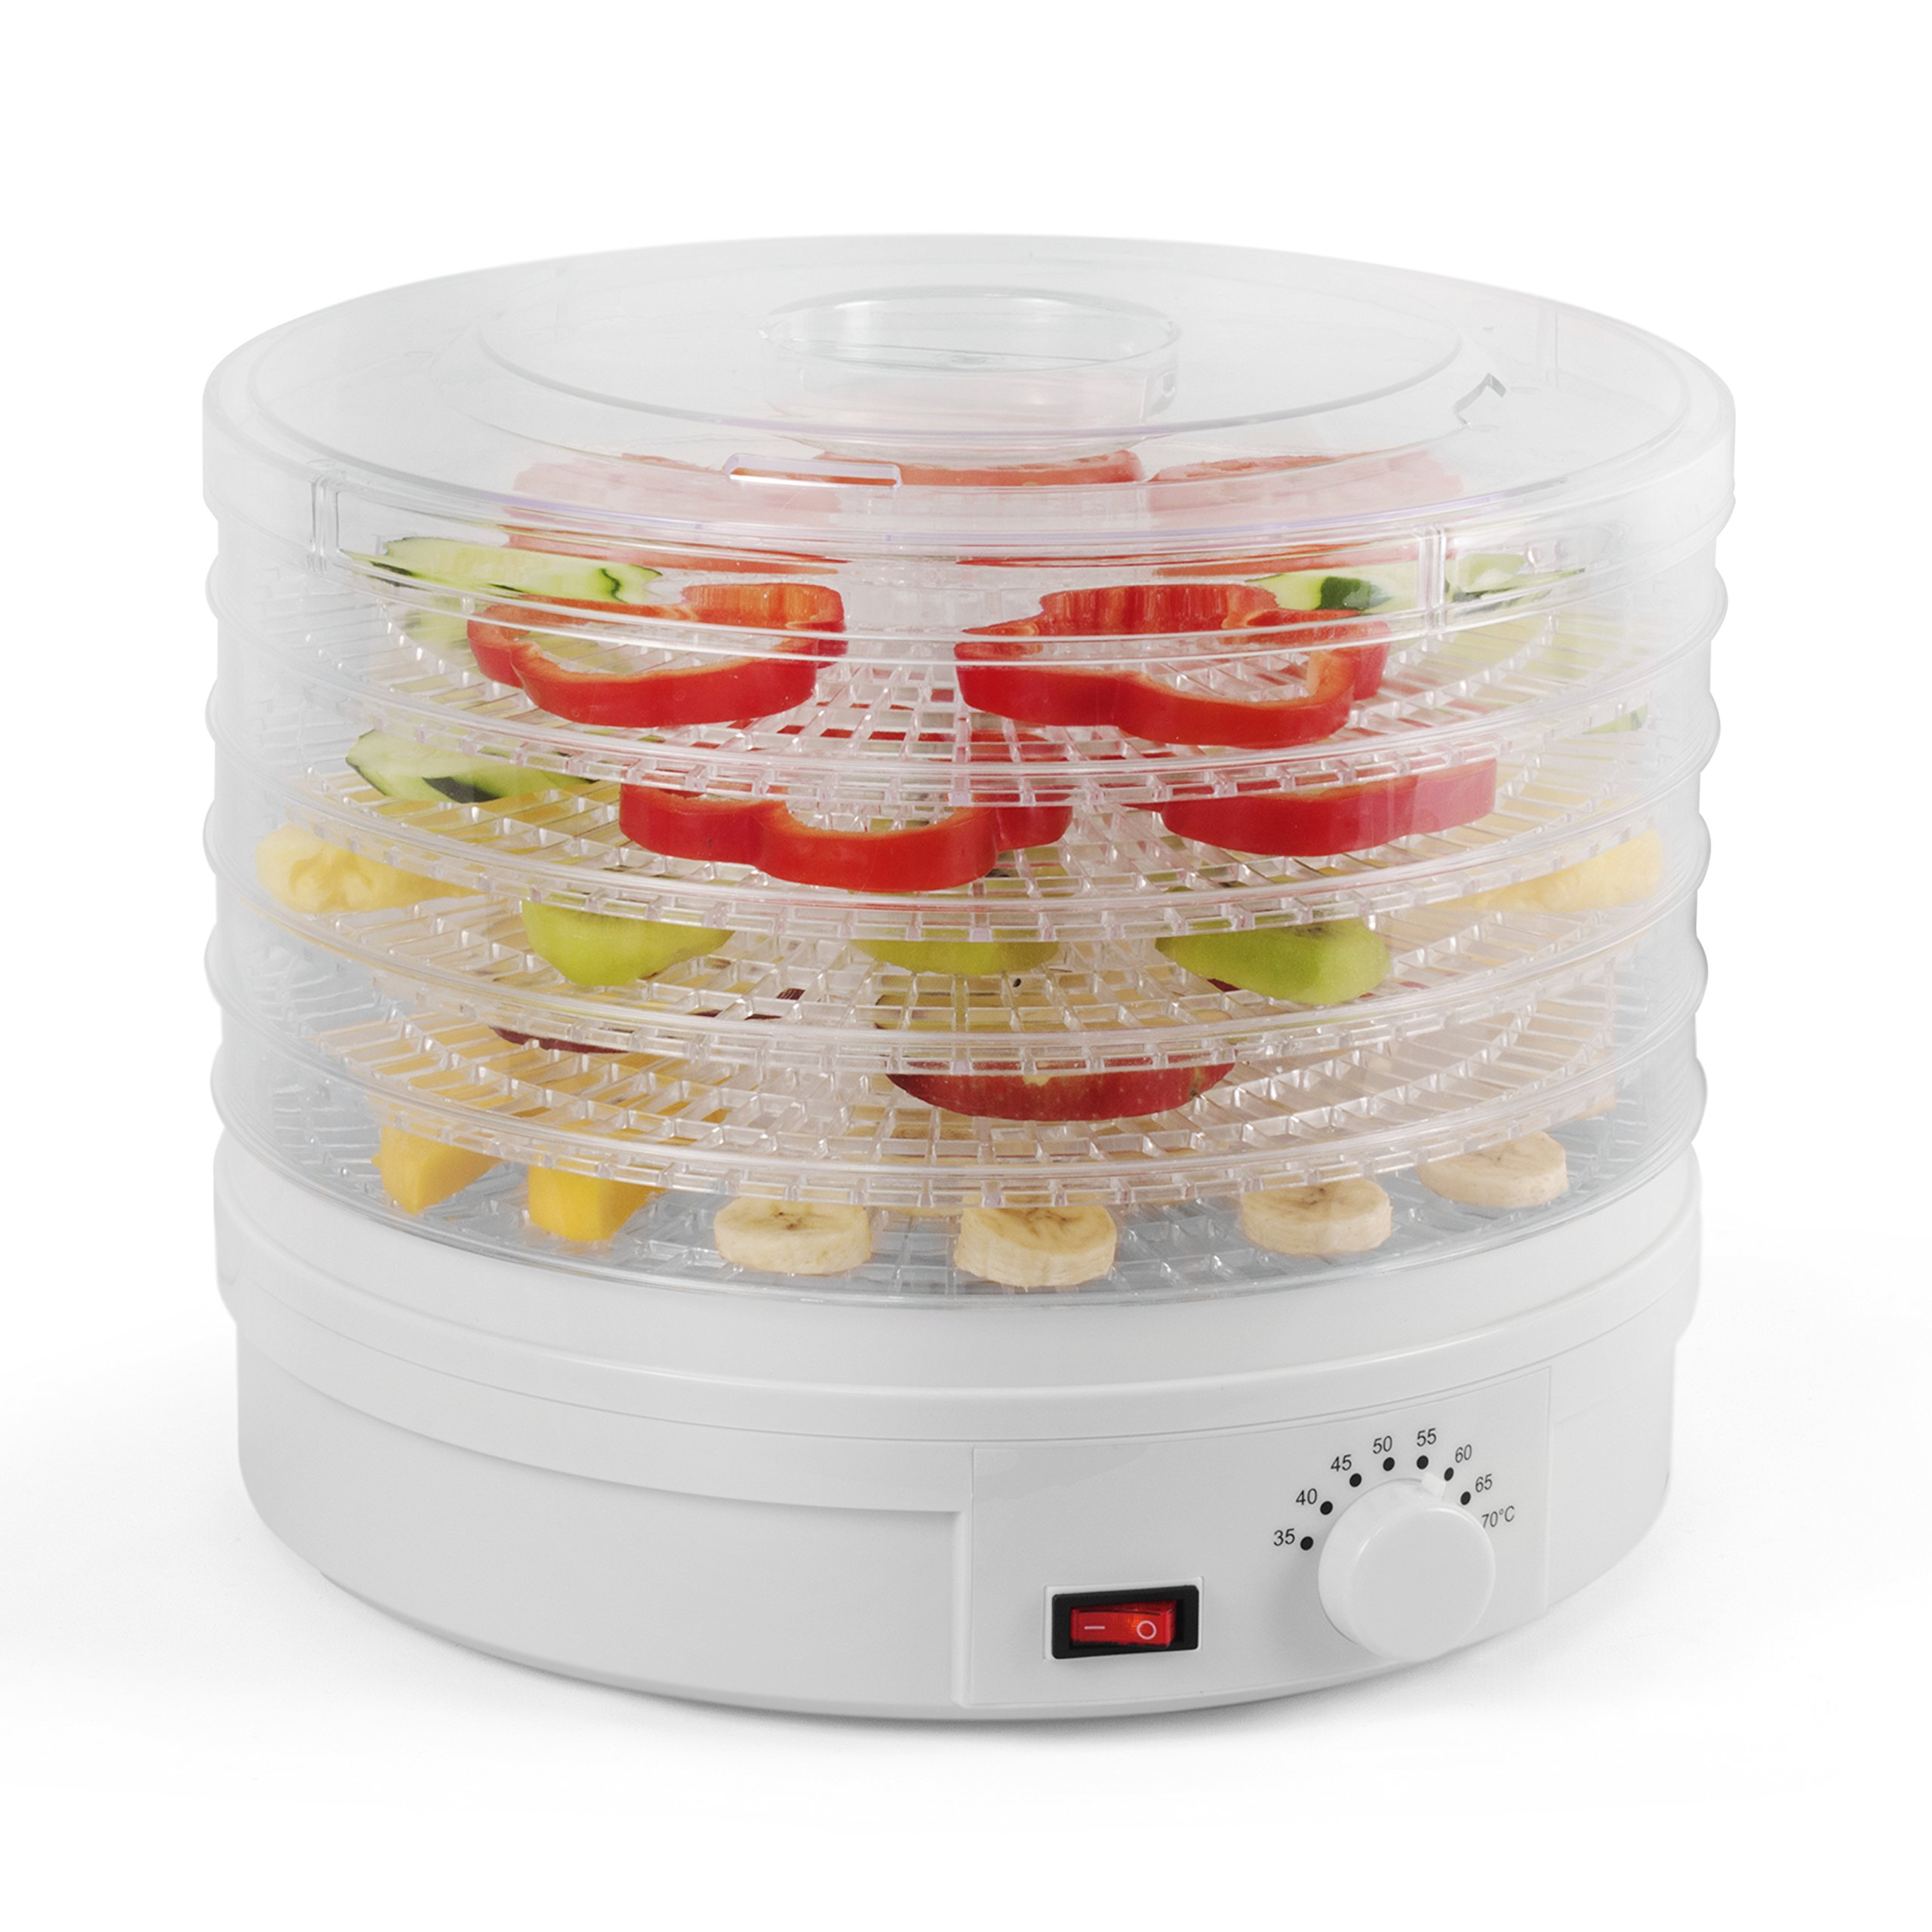 Westinghouse Food Dehydrator, Beef Jerky Maker, Food Preservation Device, Food Dehydration Machine, Dried Fruits and Vegetables Maker, Countertop Small Kitchen Appliance, WFD101W, White by Westinghouse